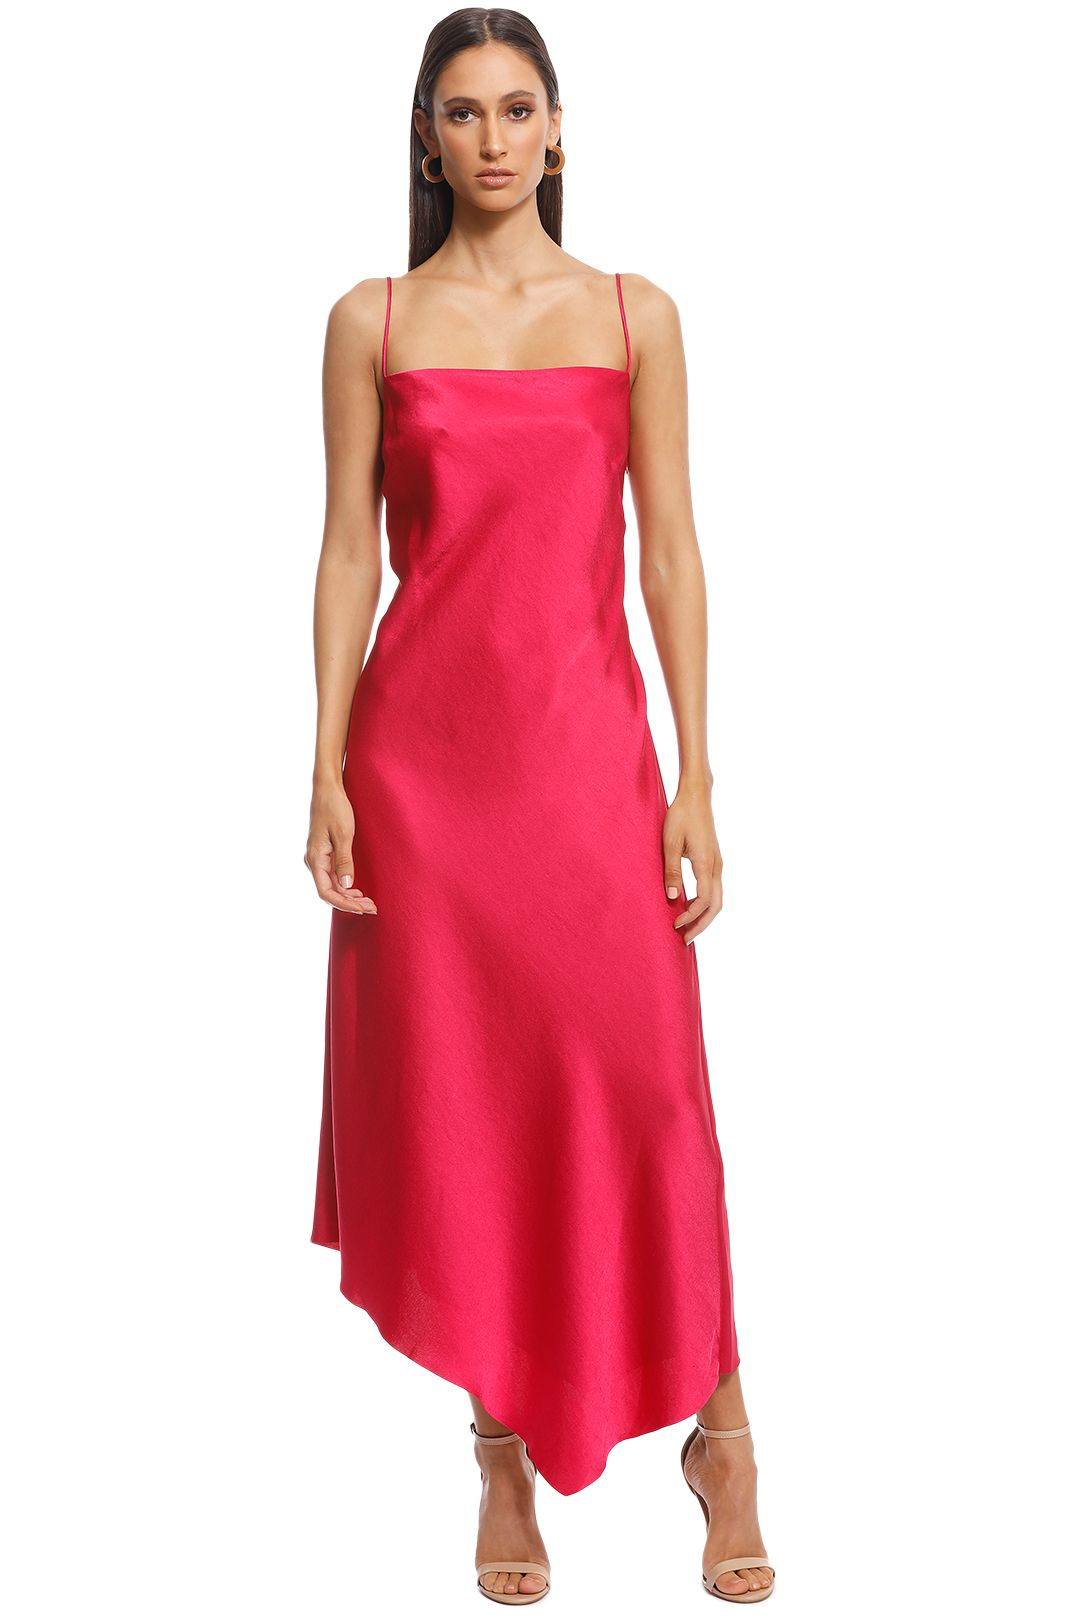 Camilla and Marc - Sirocco Slip Dress - Pink - Front